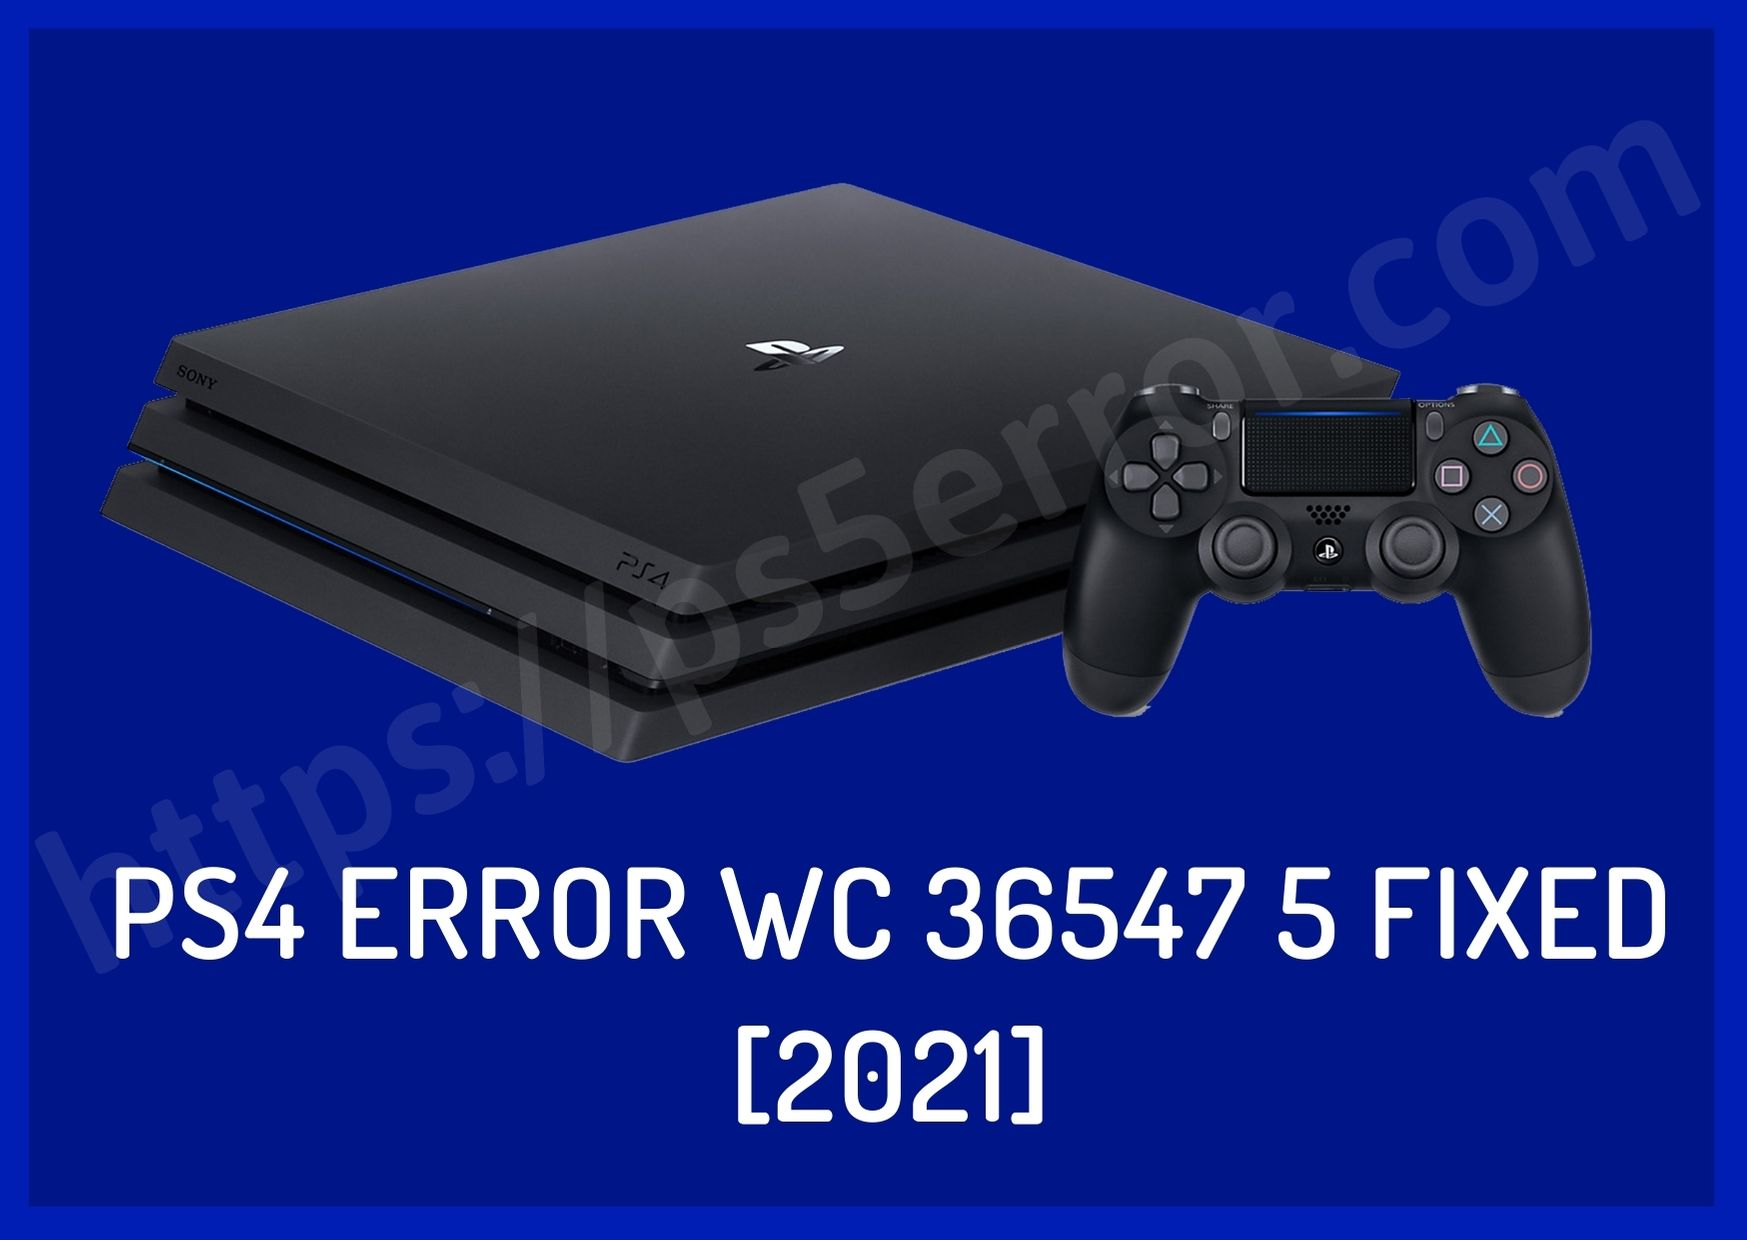 PS4 Error WC 36547 5 Fixed [2021]